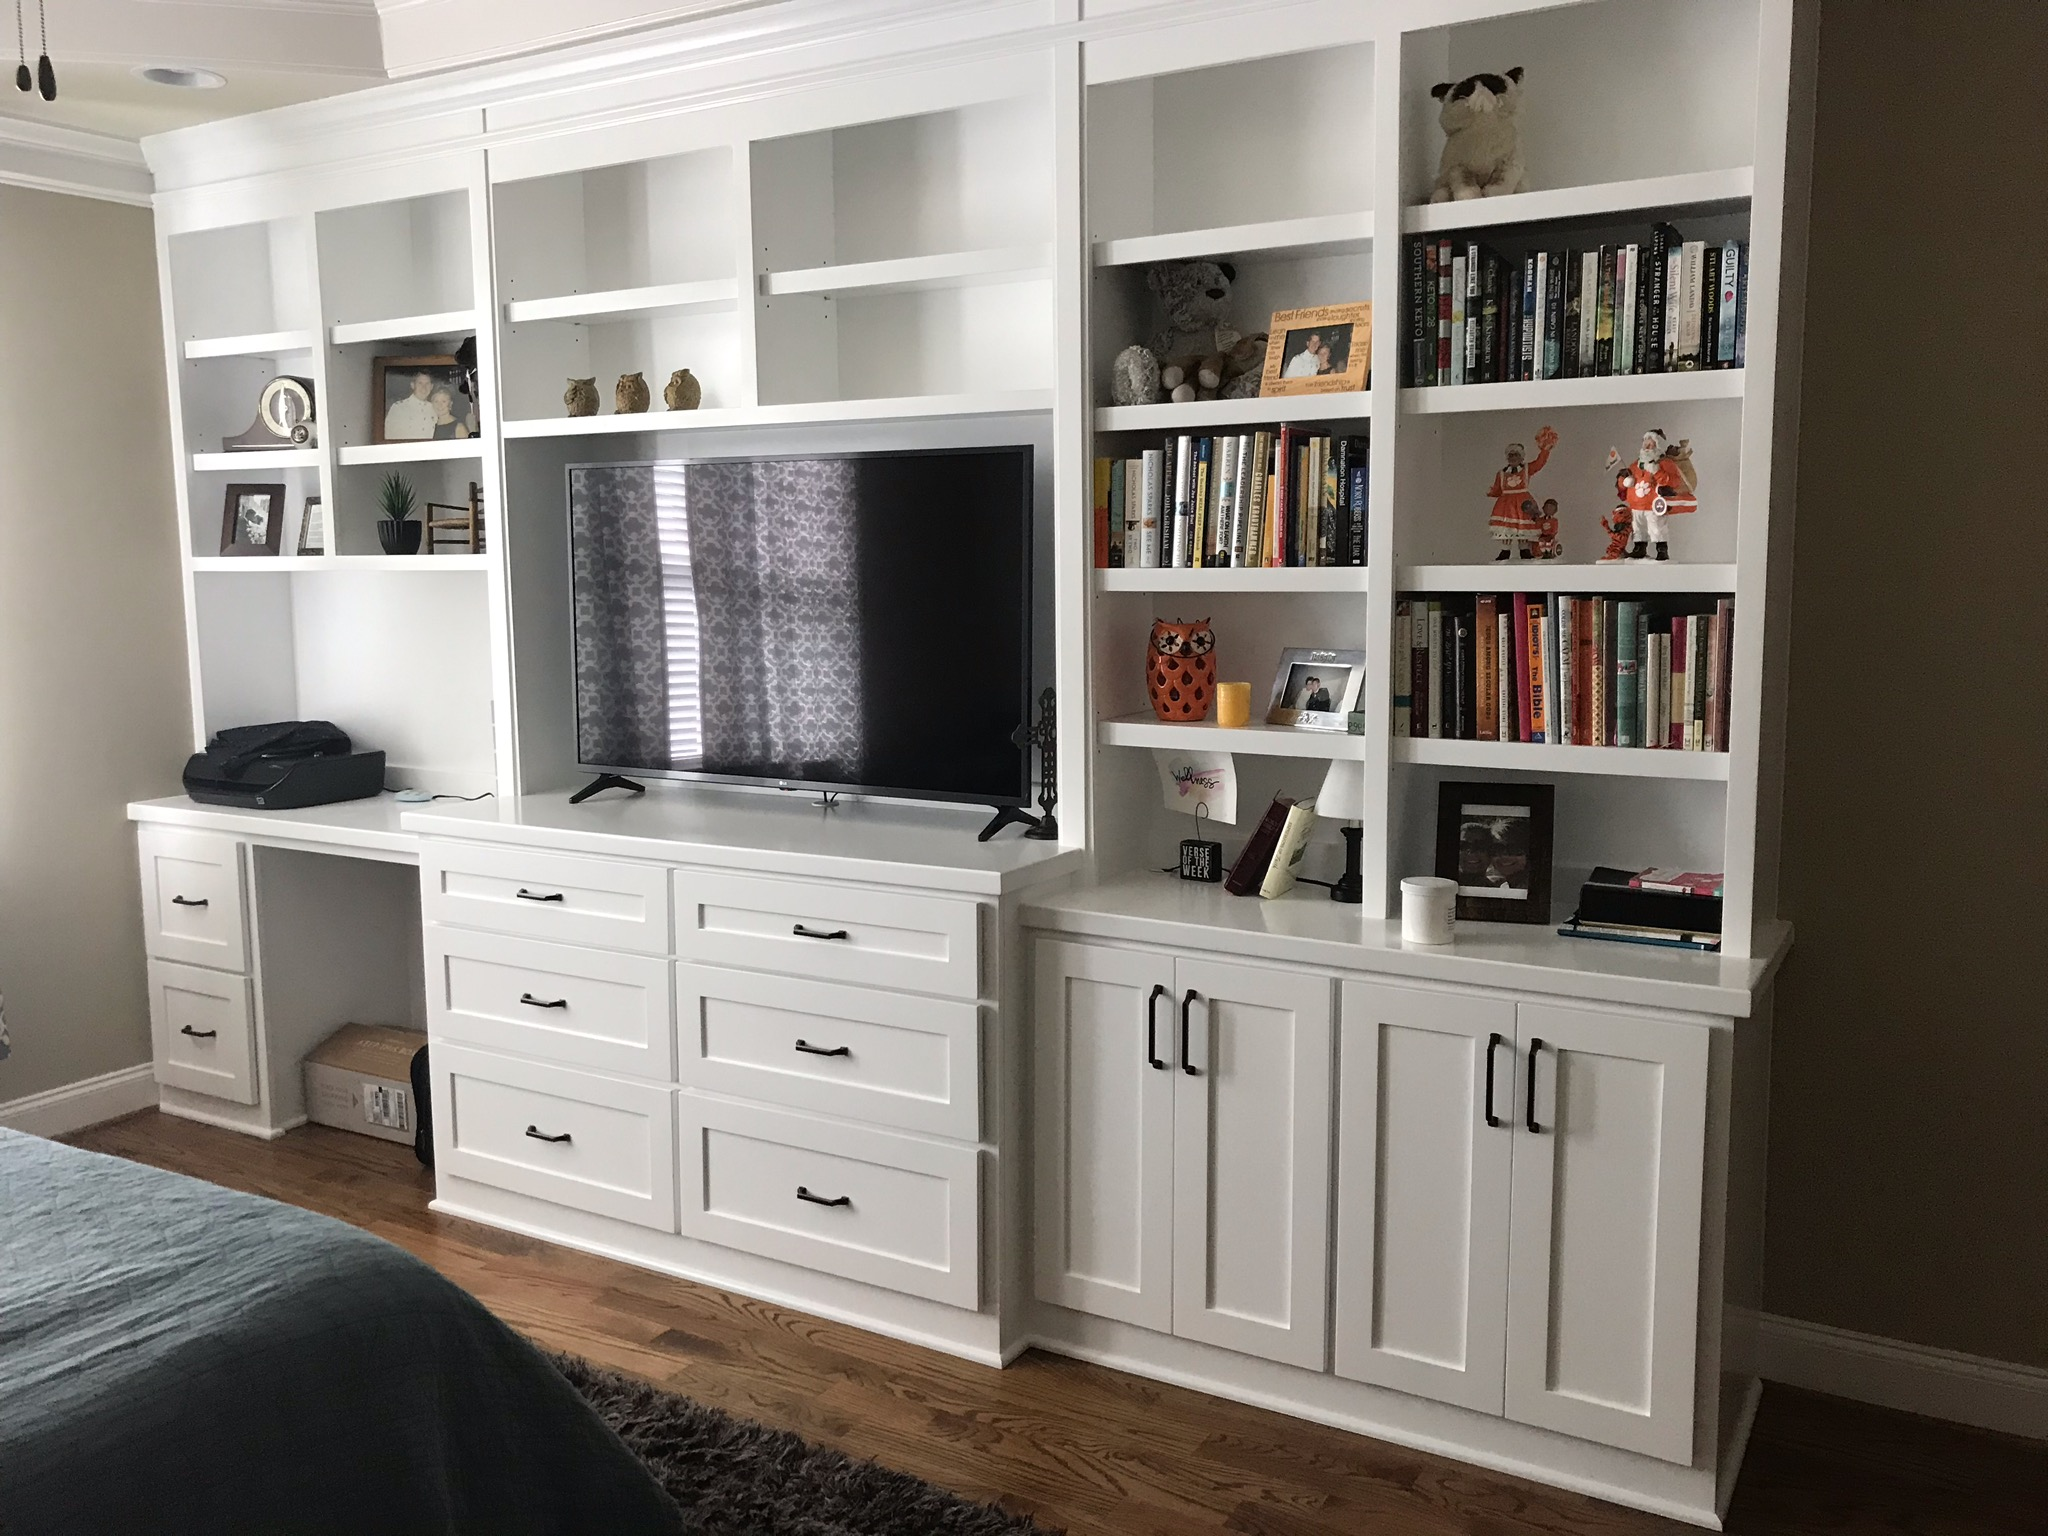 Built-In with Desk Opening, Shaker Doors and Drawers, Monitor & TV Openings, and Crown